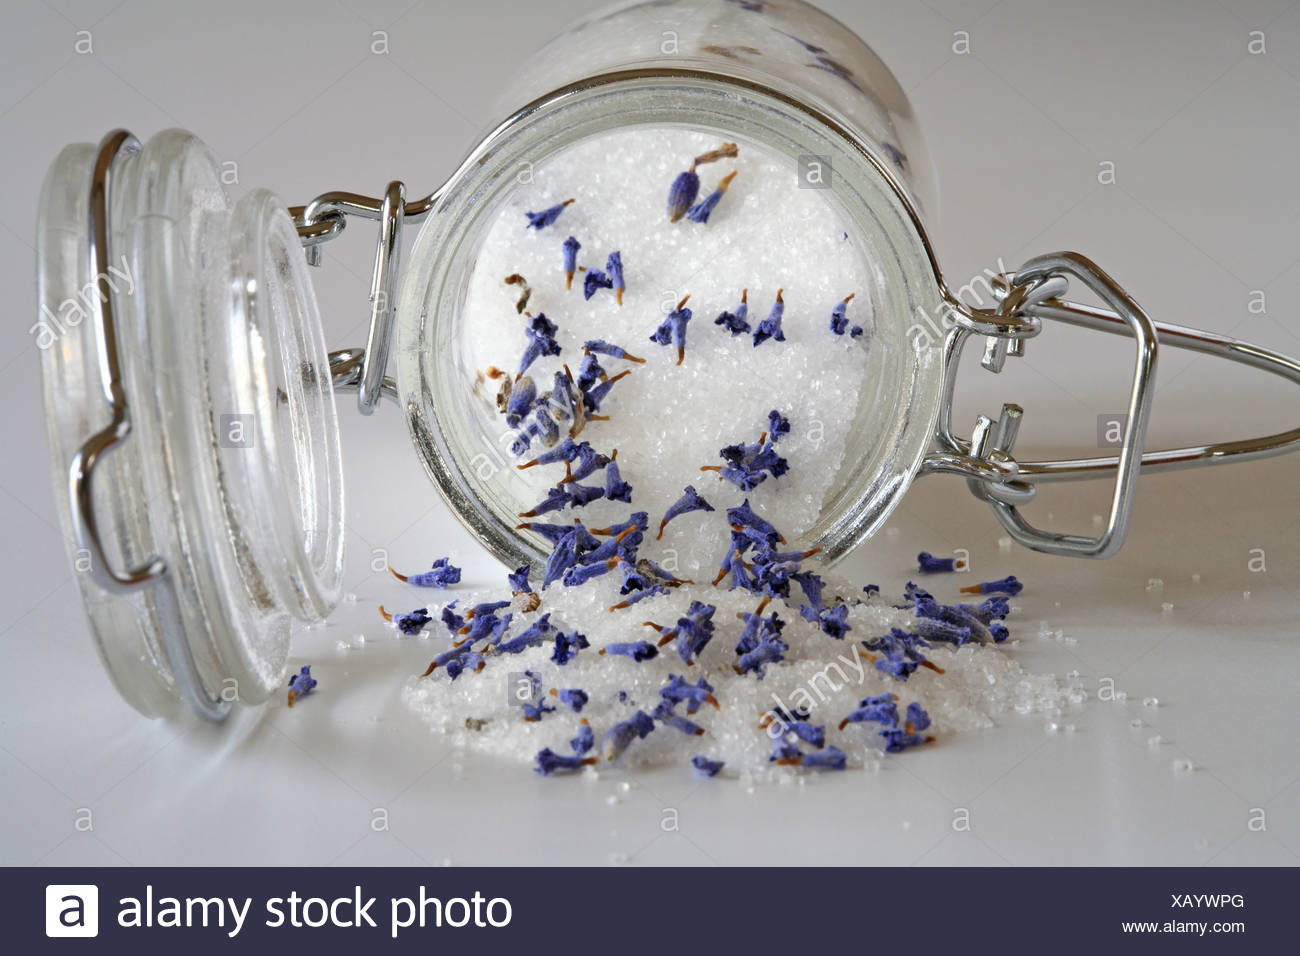 Fine grained sugar with dried lavender blossoms in a preserving jar - Stock Image